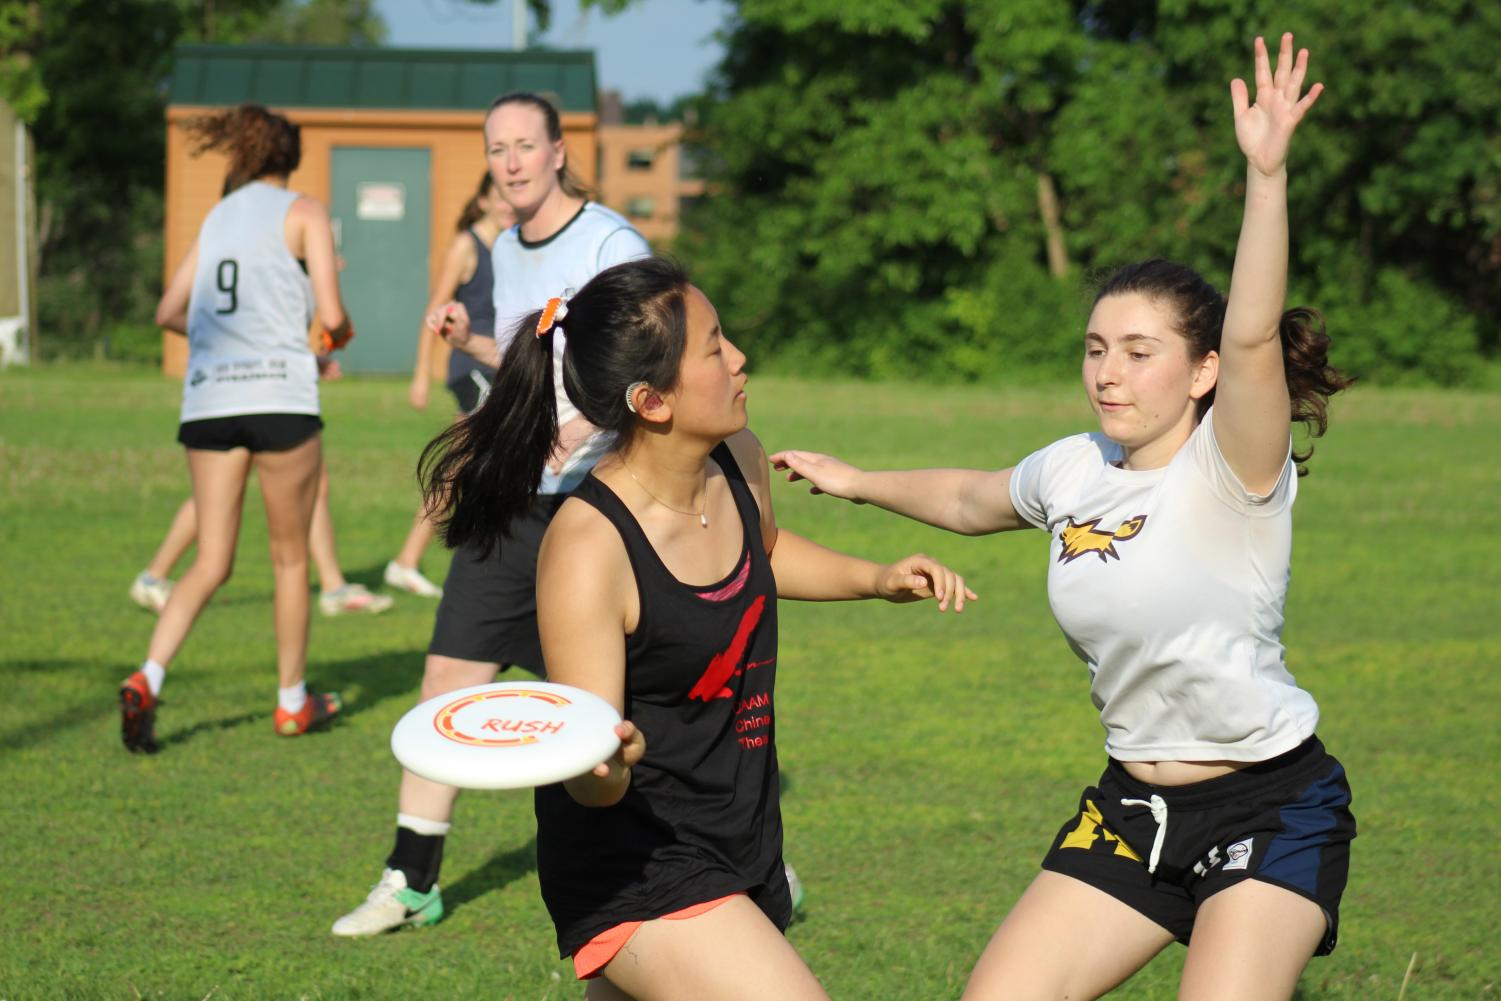 Senior Anna Kasper flicks the disc to her teammate June 5 at Oak Hill Park. The Park ultimate boys' and girls' teams played the coaches and alum during this end of the year team bonding game.